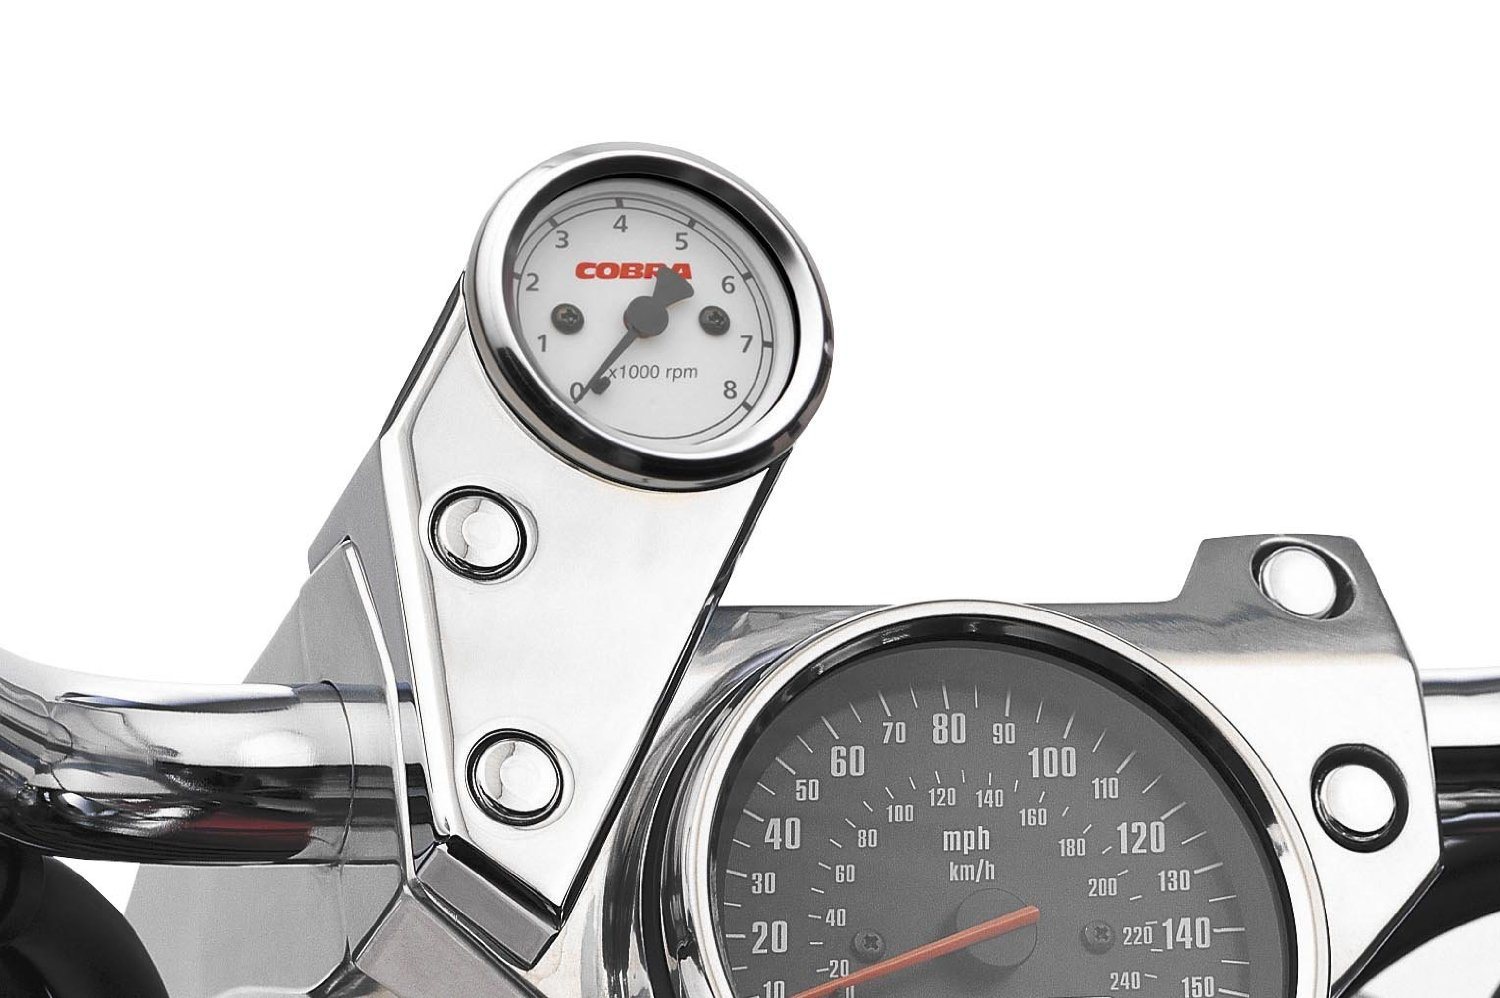 Get it delivered to your door - COBRA Bolt-On Tach Kit 01-1650 - 6300 (EGP)